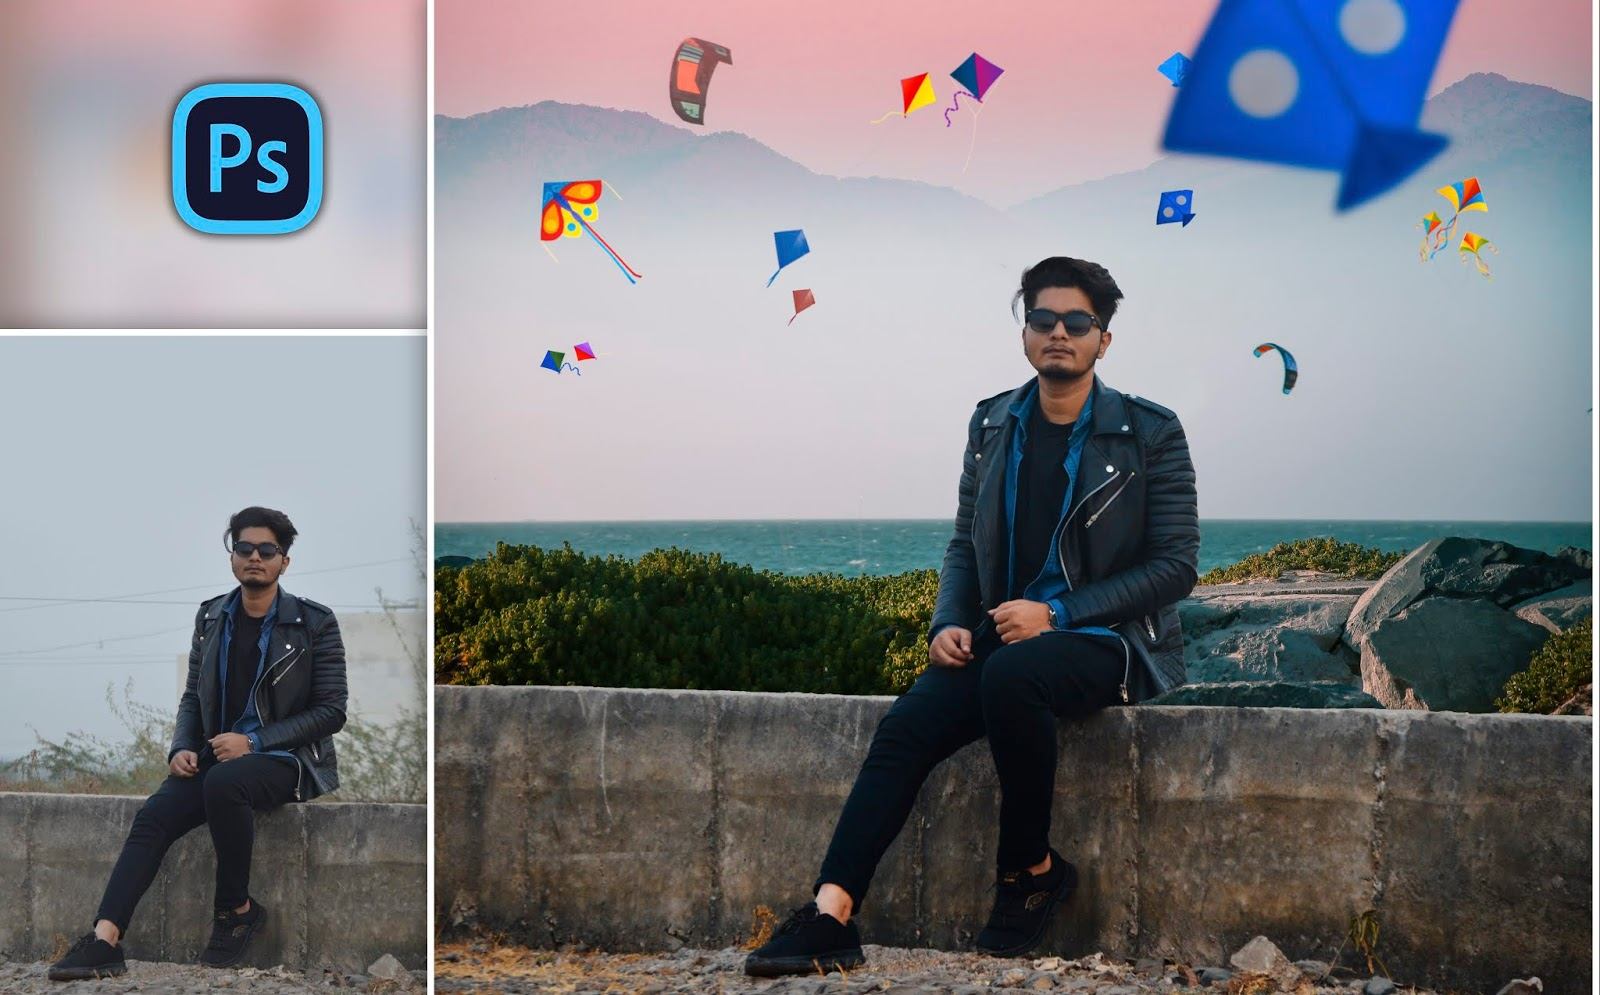 Kite Festival Special Photo Editing in Photoshop | Sky full of Kites Photo Editing Like Instagram Photos